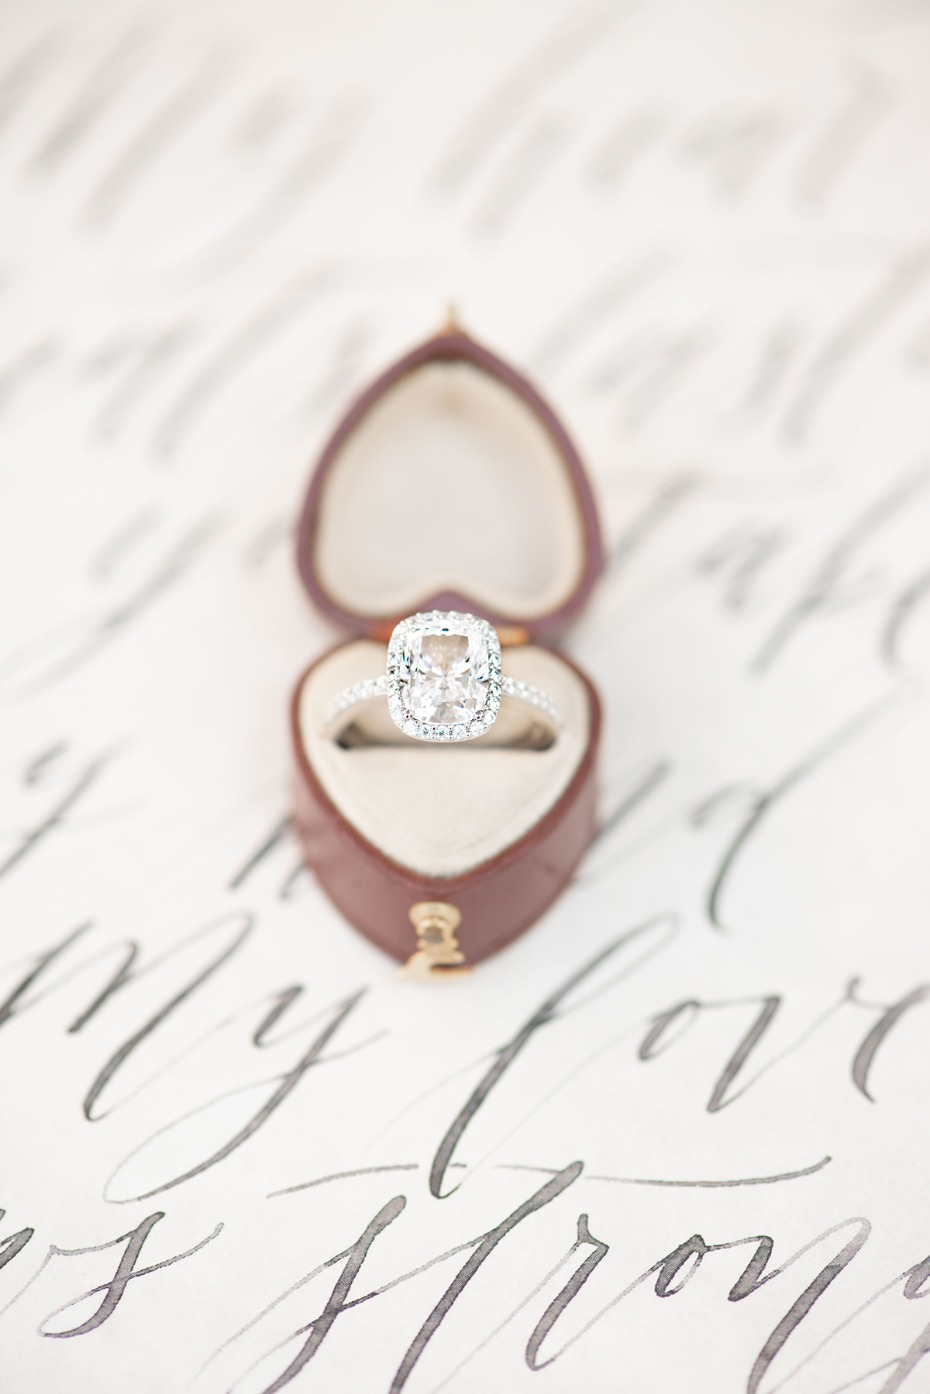 wedding ring and heart shaped ring box